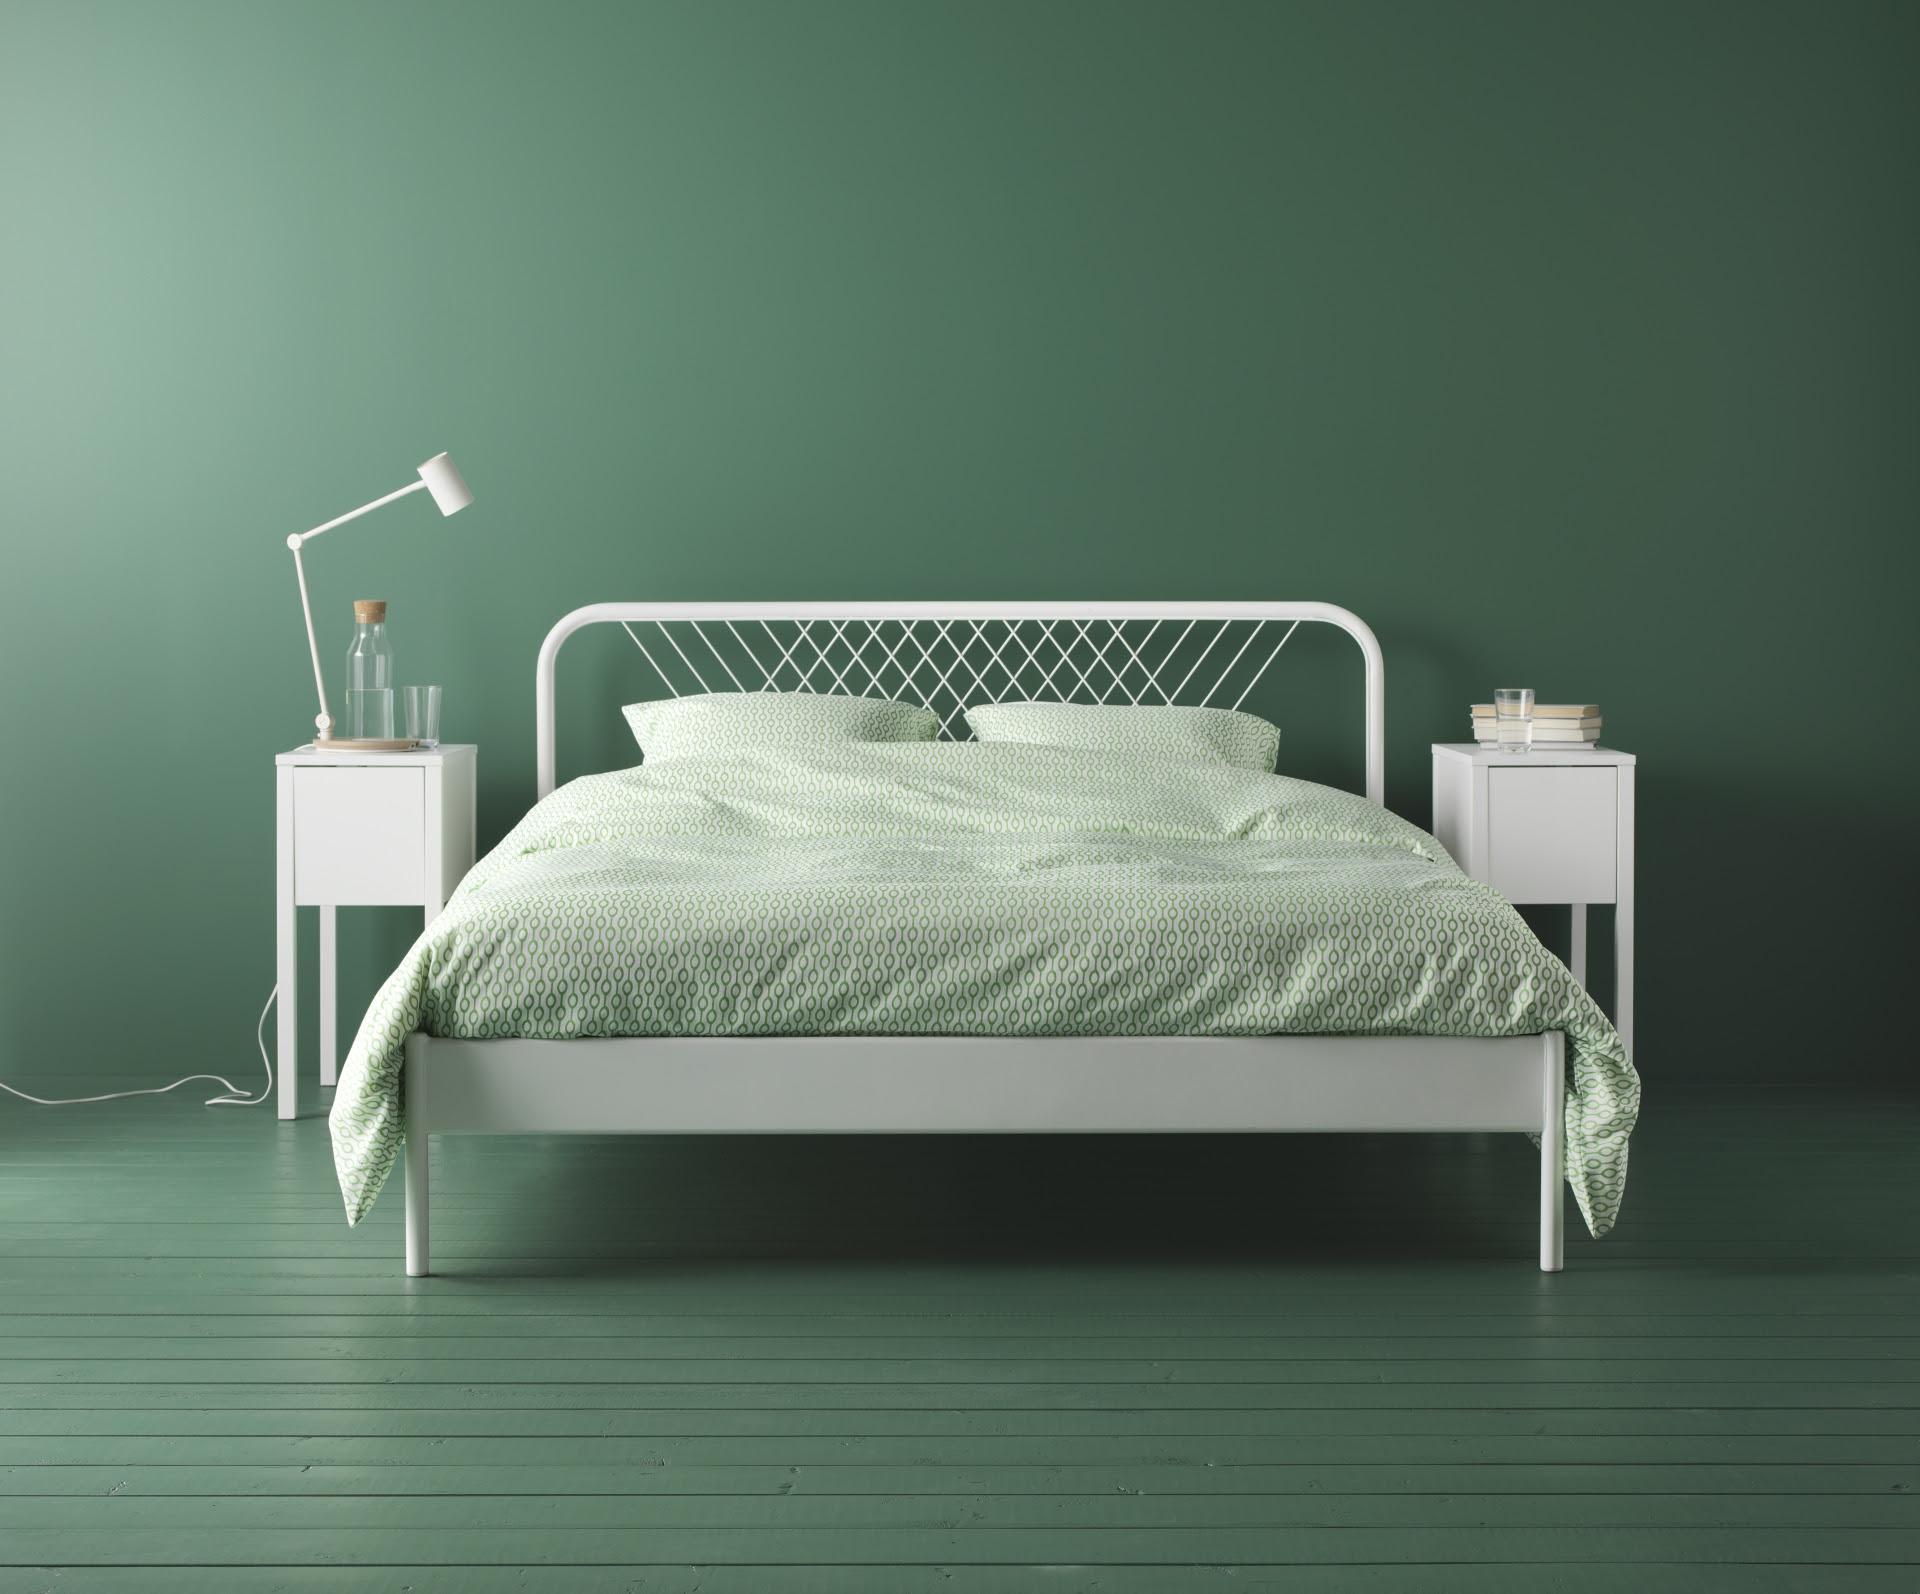 Appealing Best Ikea Bed Frame Gallery Best inspiration home design